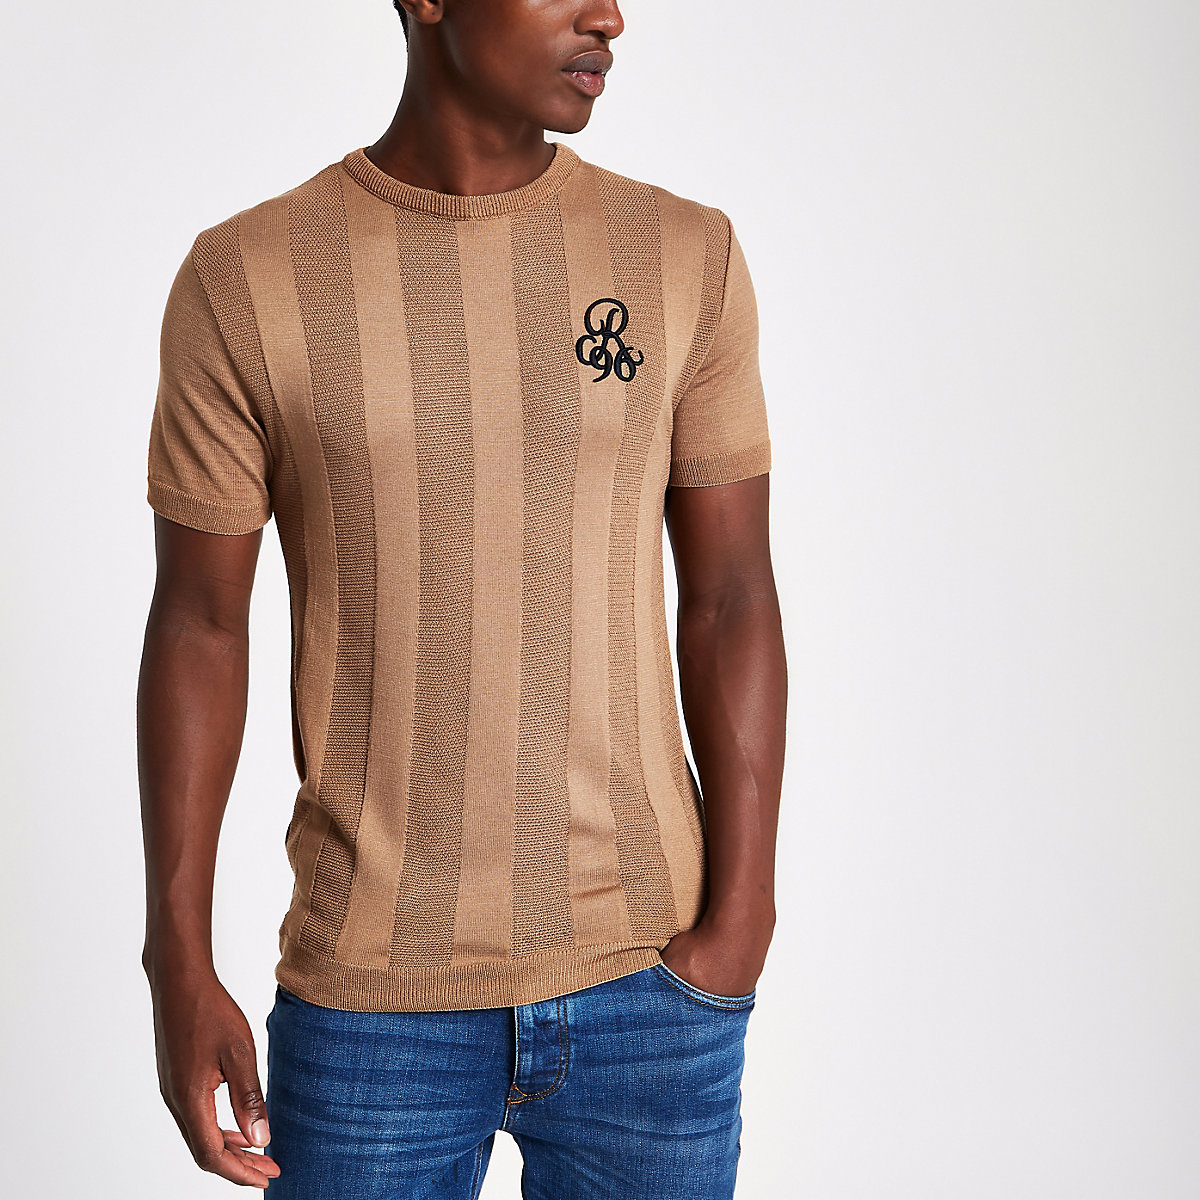 Light brown R96 muscle fit T-shirt